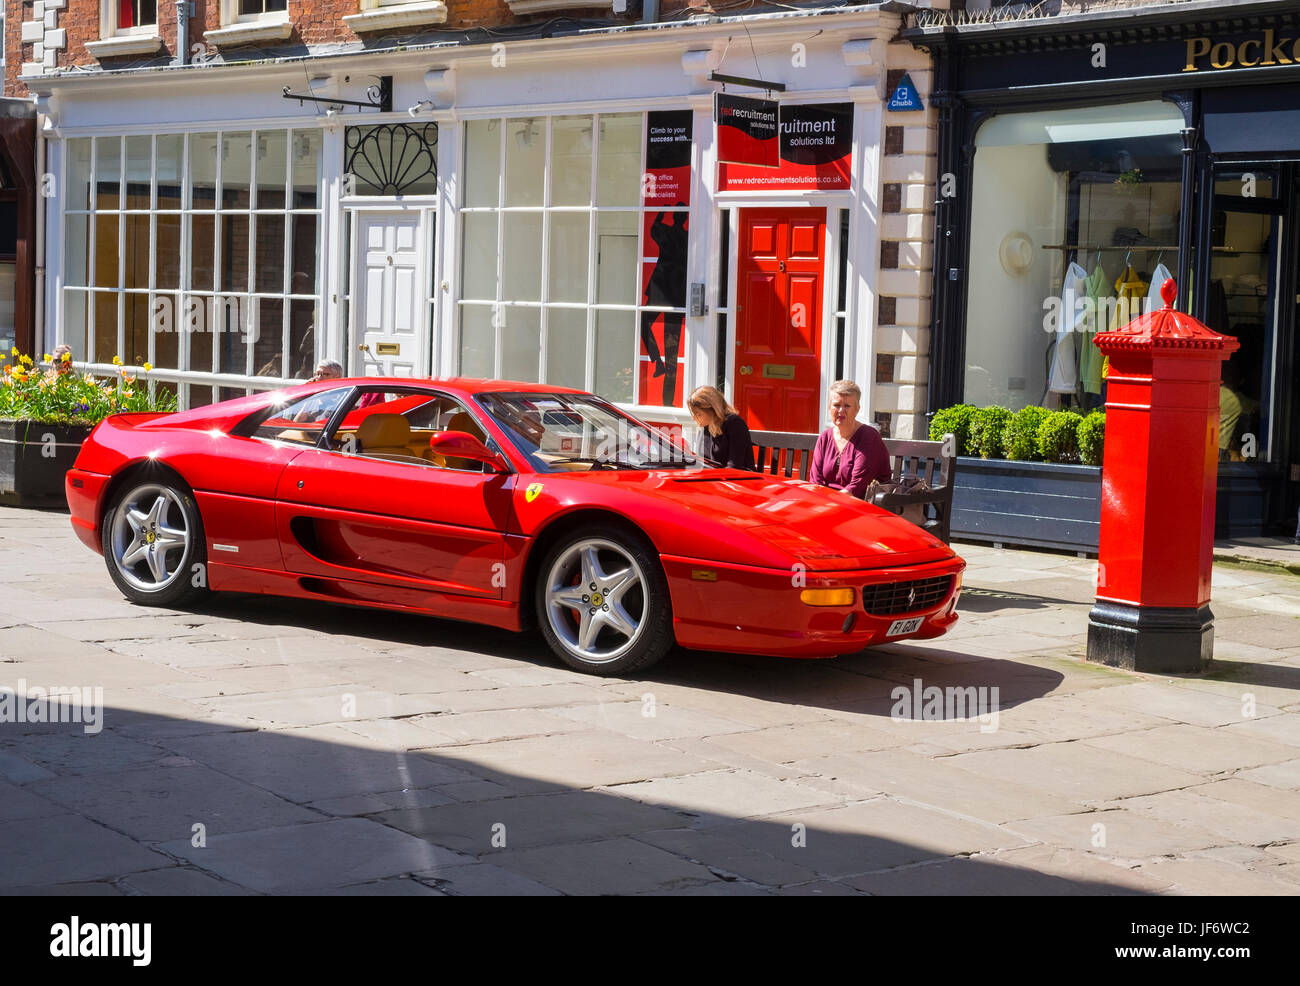 Red Ferrari sports car red door and red Penfold pillar box in The Square Shrewsbury Shropshire England UK & Red Ferrari sports car red door and red Penfold pillar box in The ...